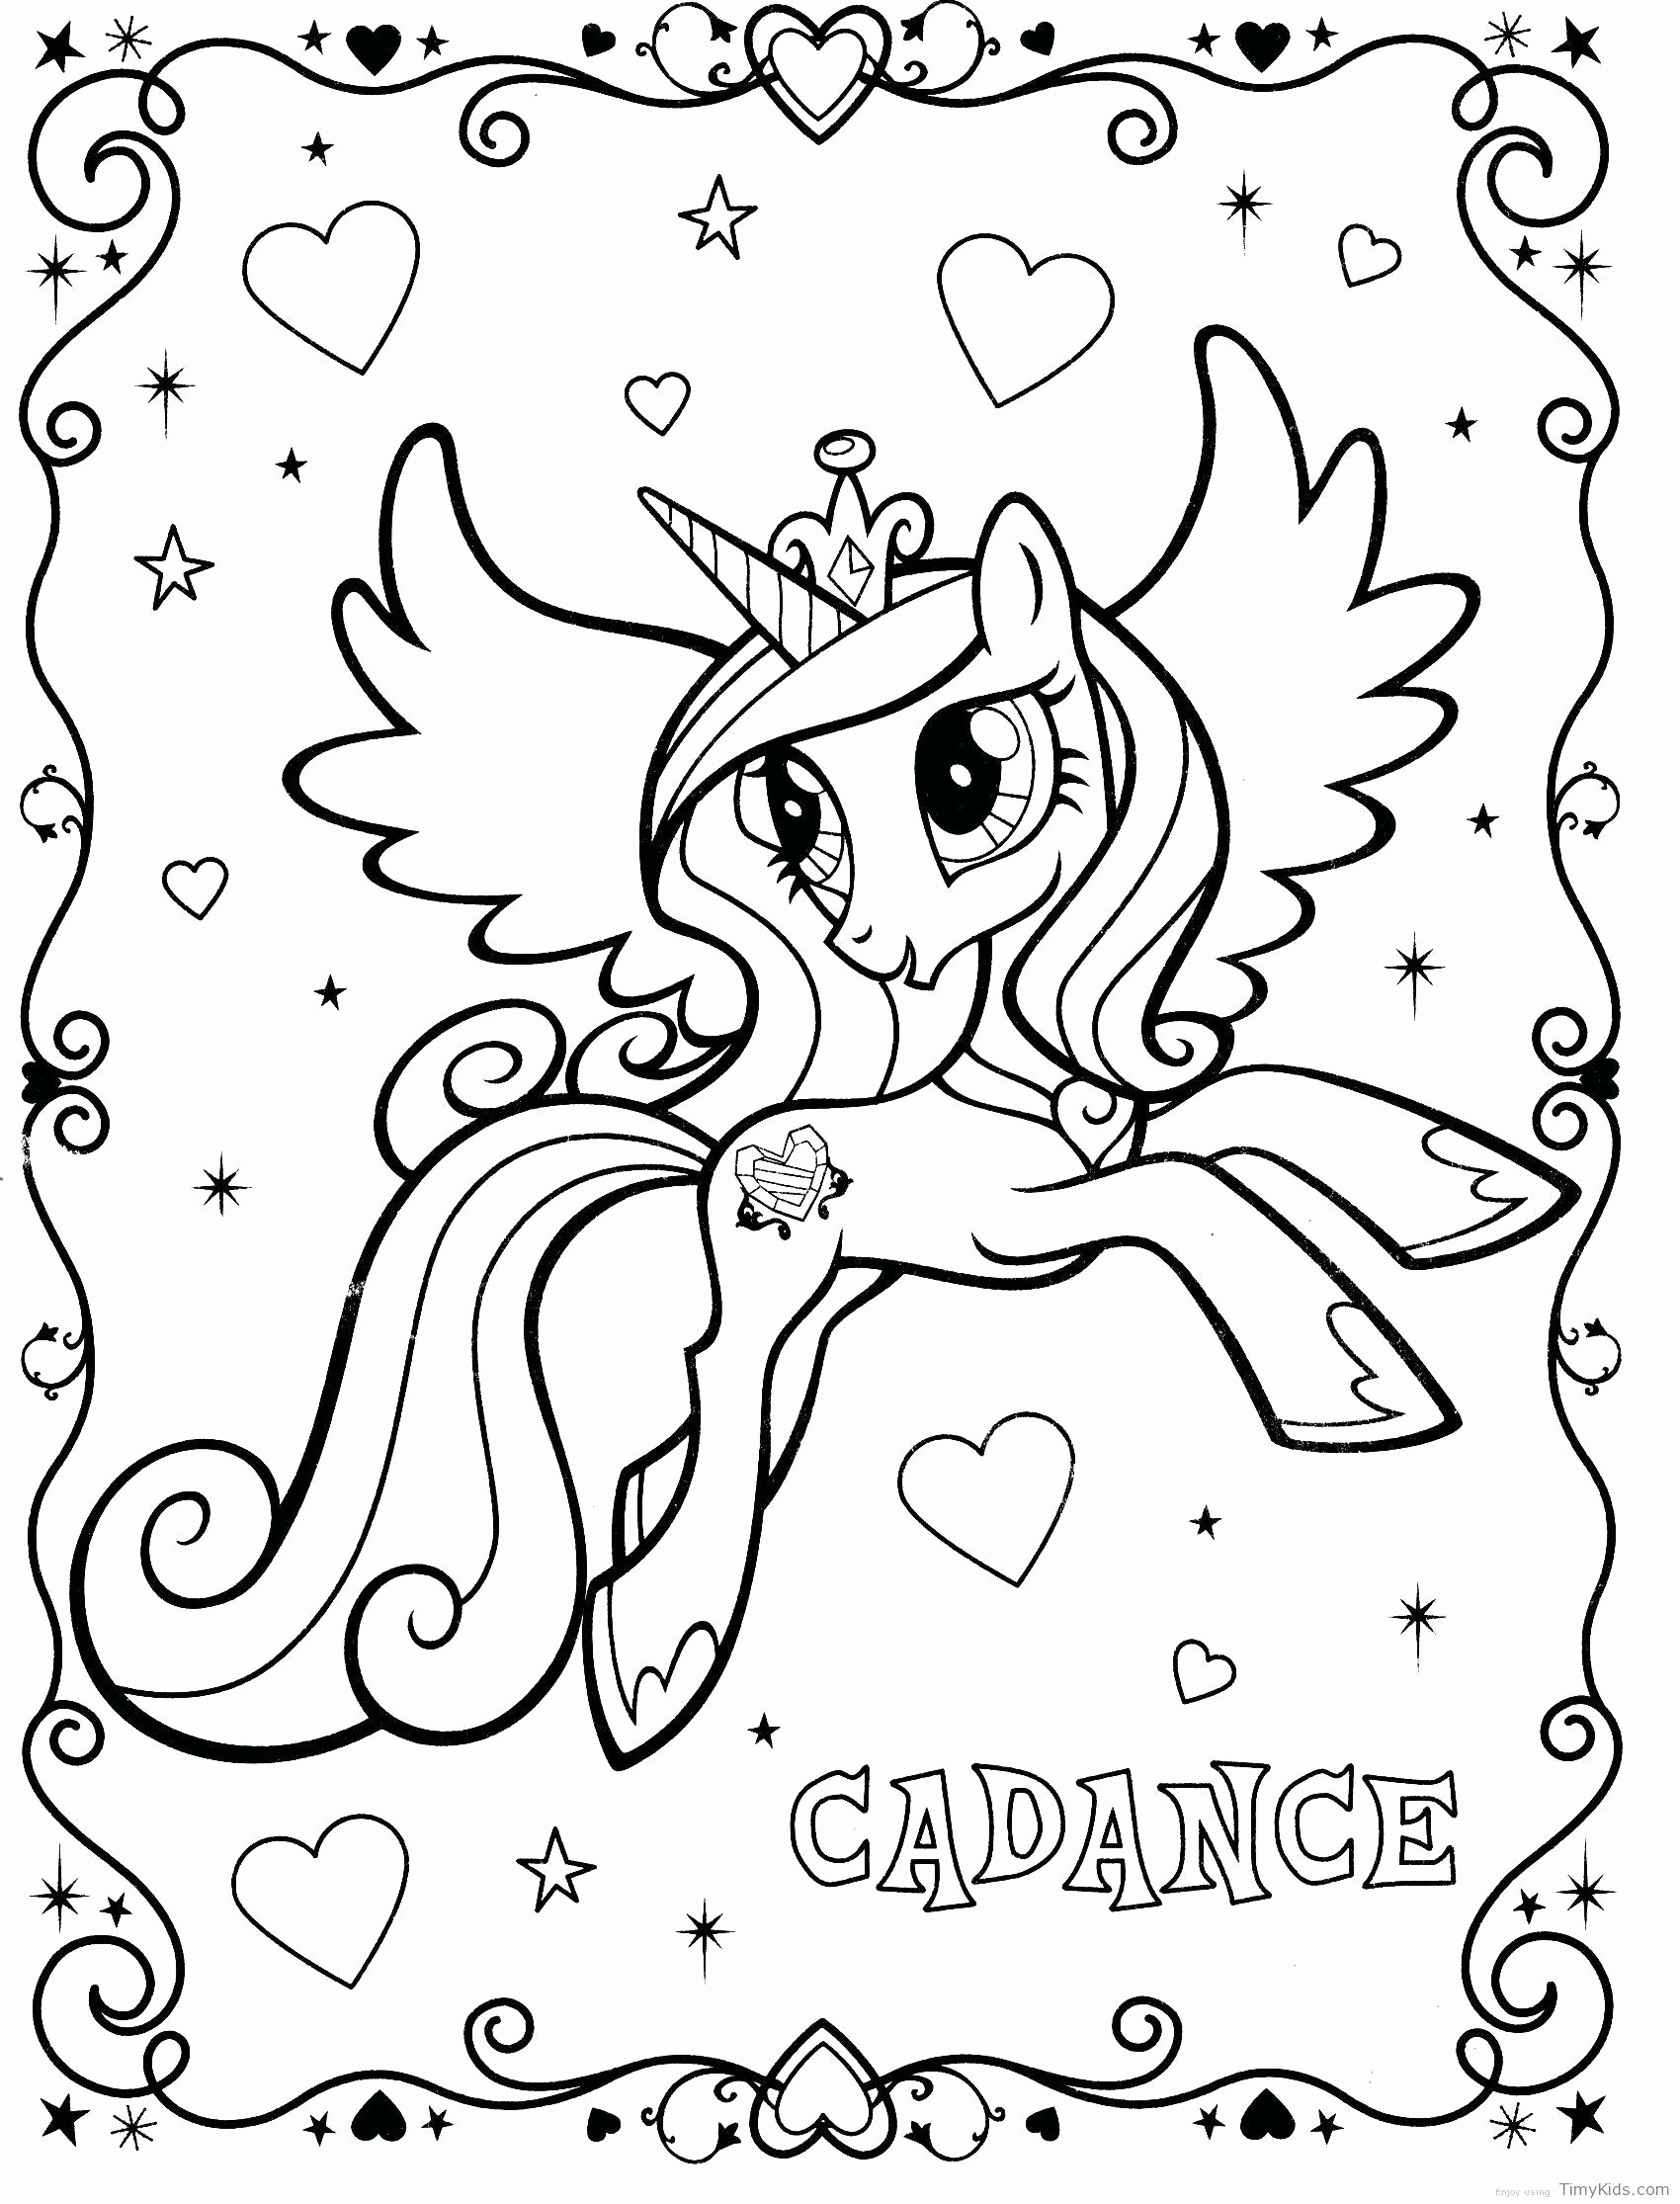 Princess Cadance Coloring Pages - Coloring Home